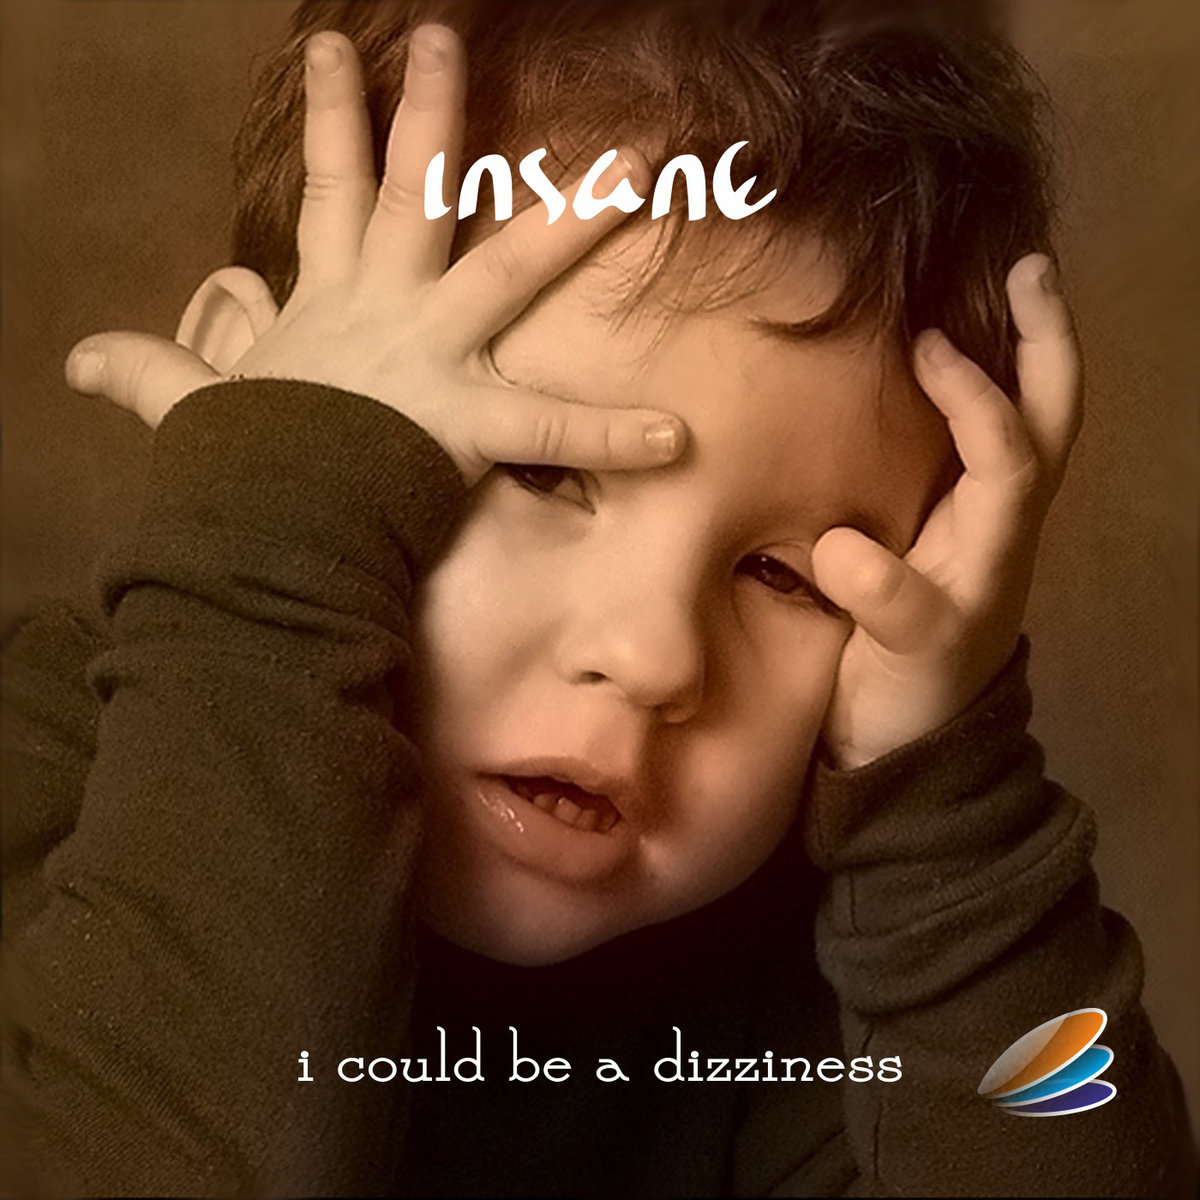 Insane - I Could Be A Dizziness